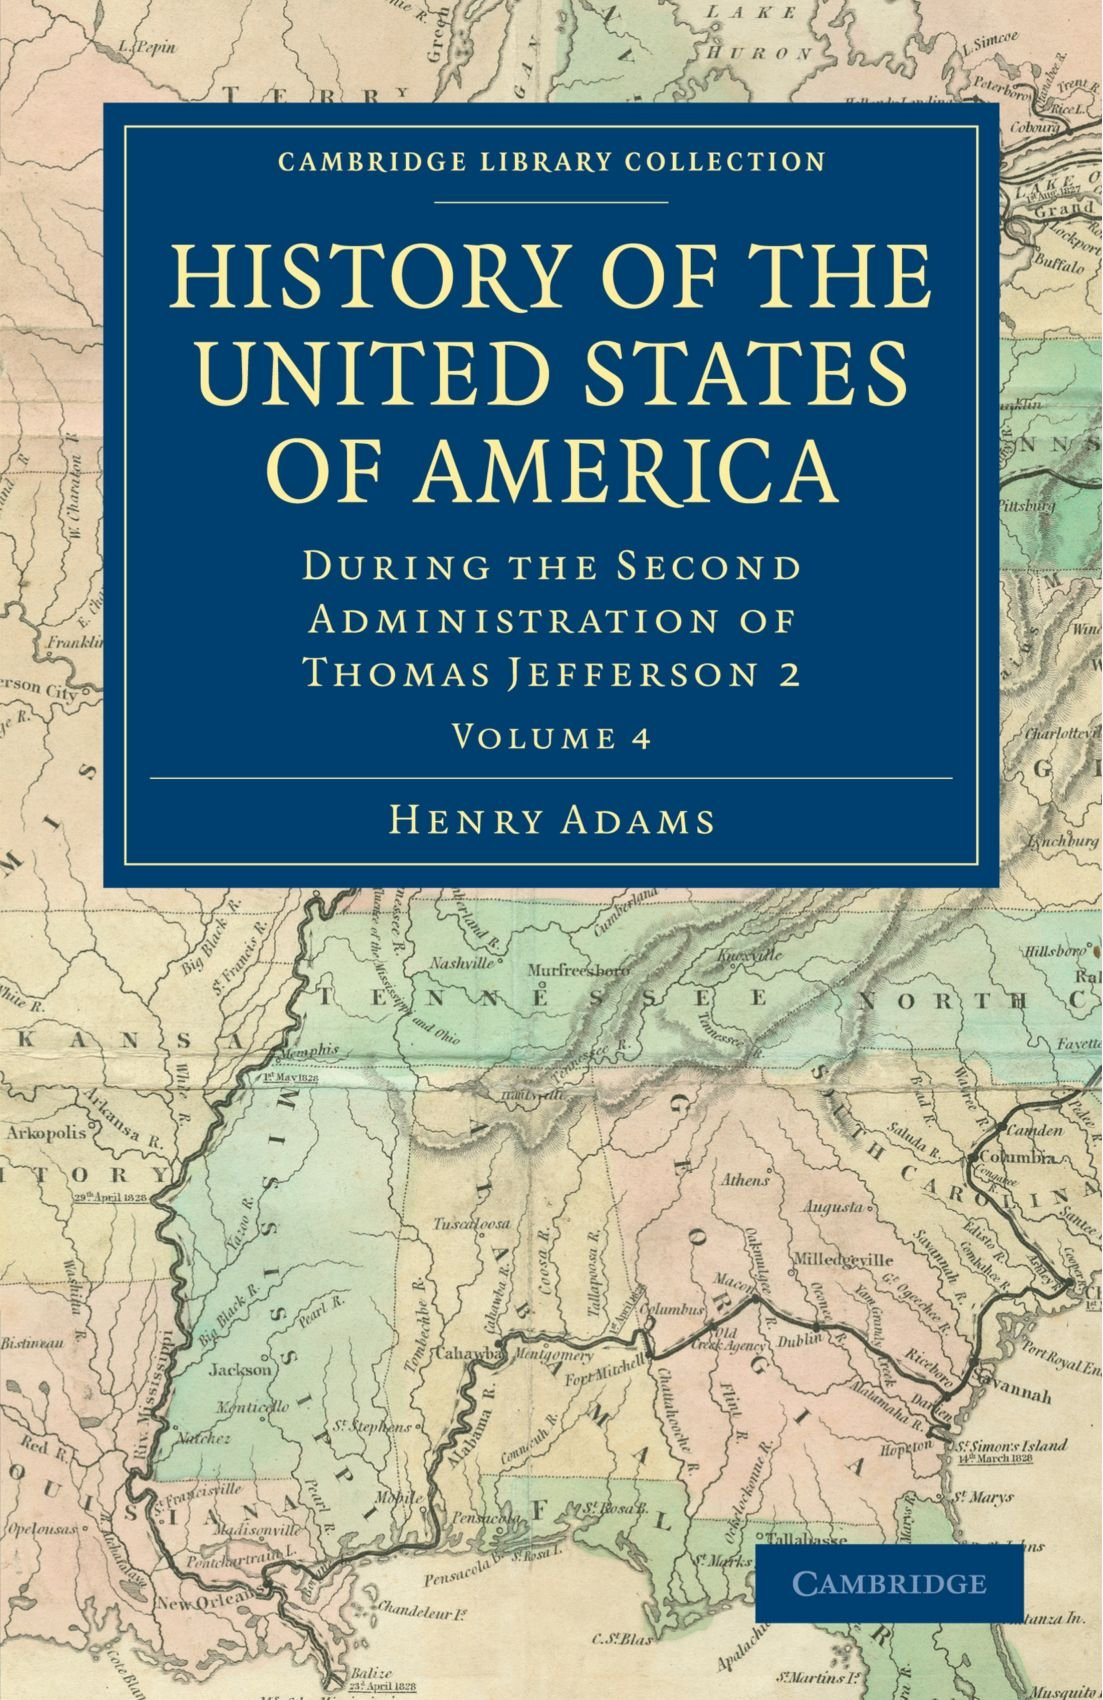 History of the United States of America (1801-1817): Volume 4: During the Second Administration of Thomas Jefferson 2 (Cambridge Library Collection - North American History) pdf